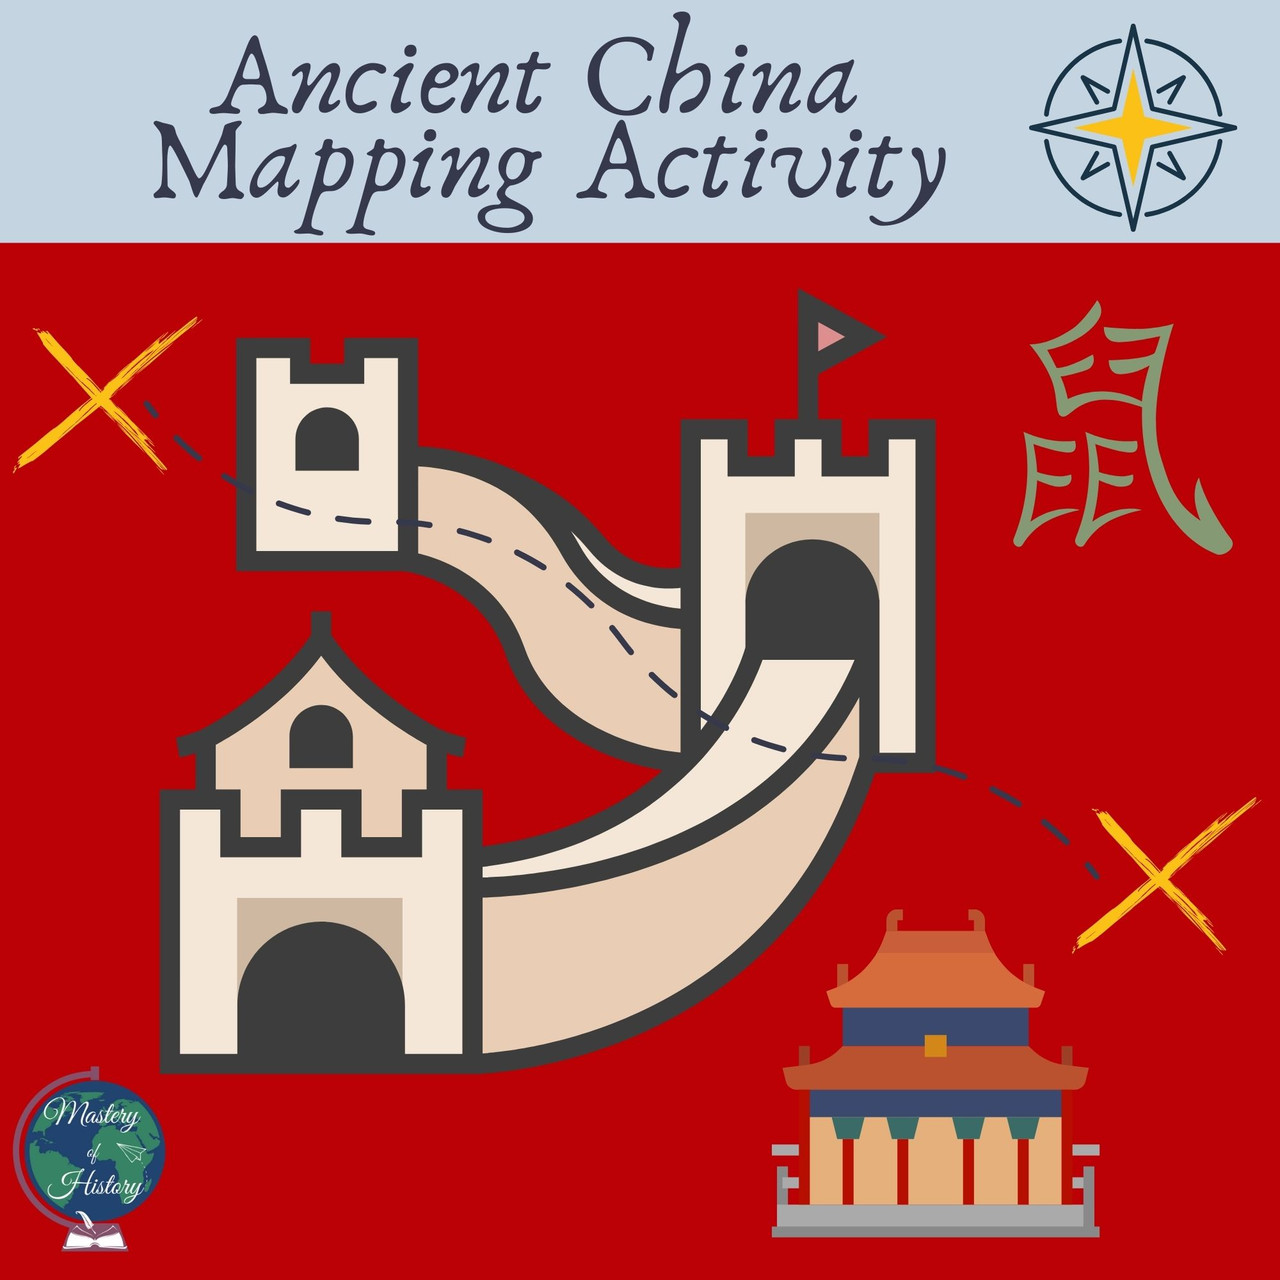 medium resolution of Ancient China Mapping Activity